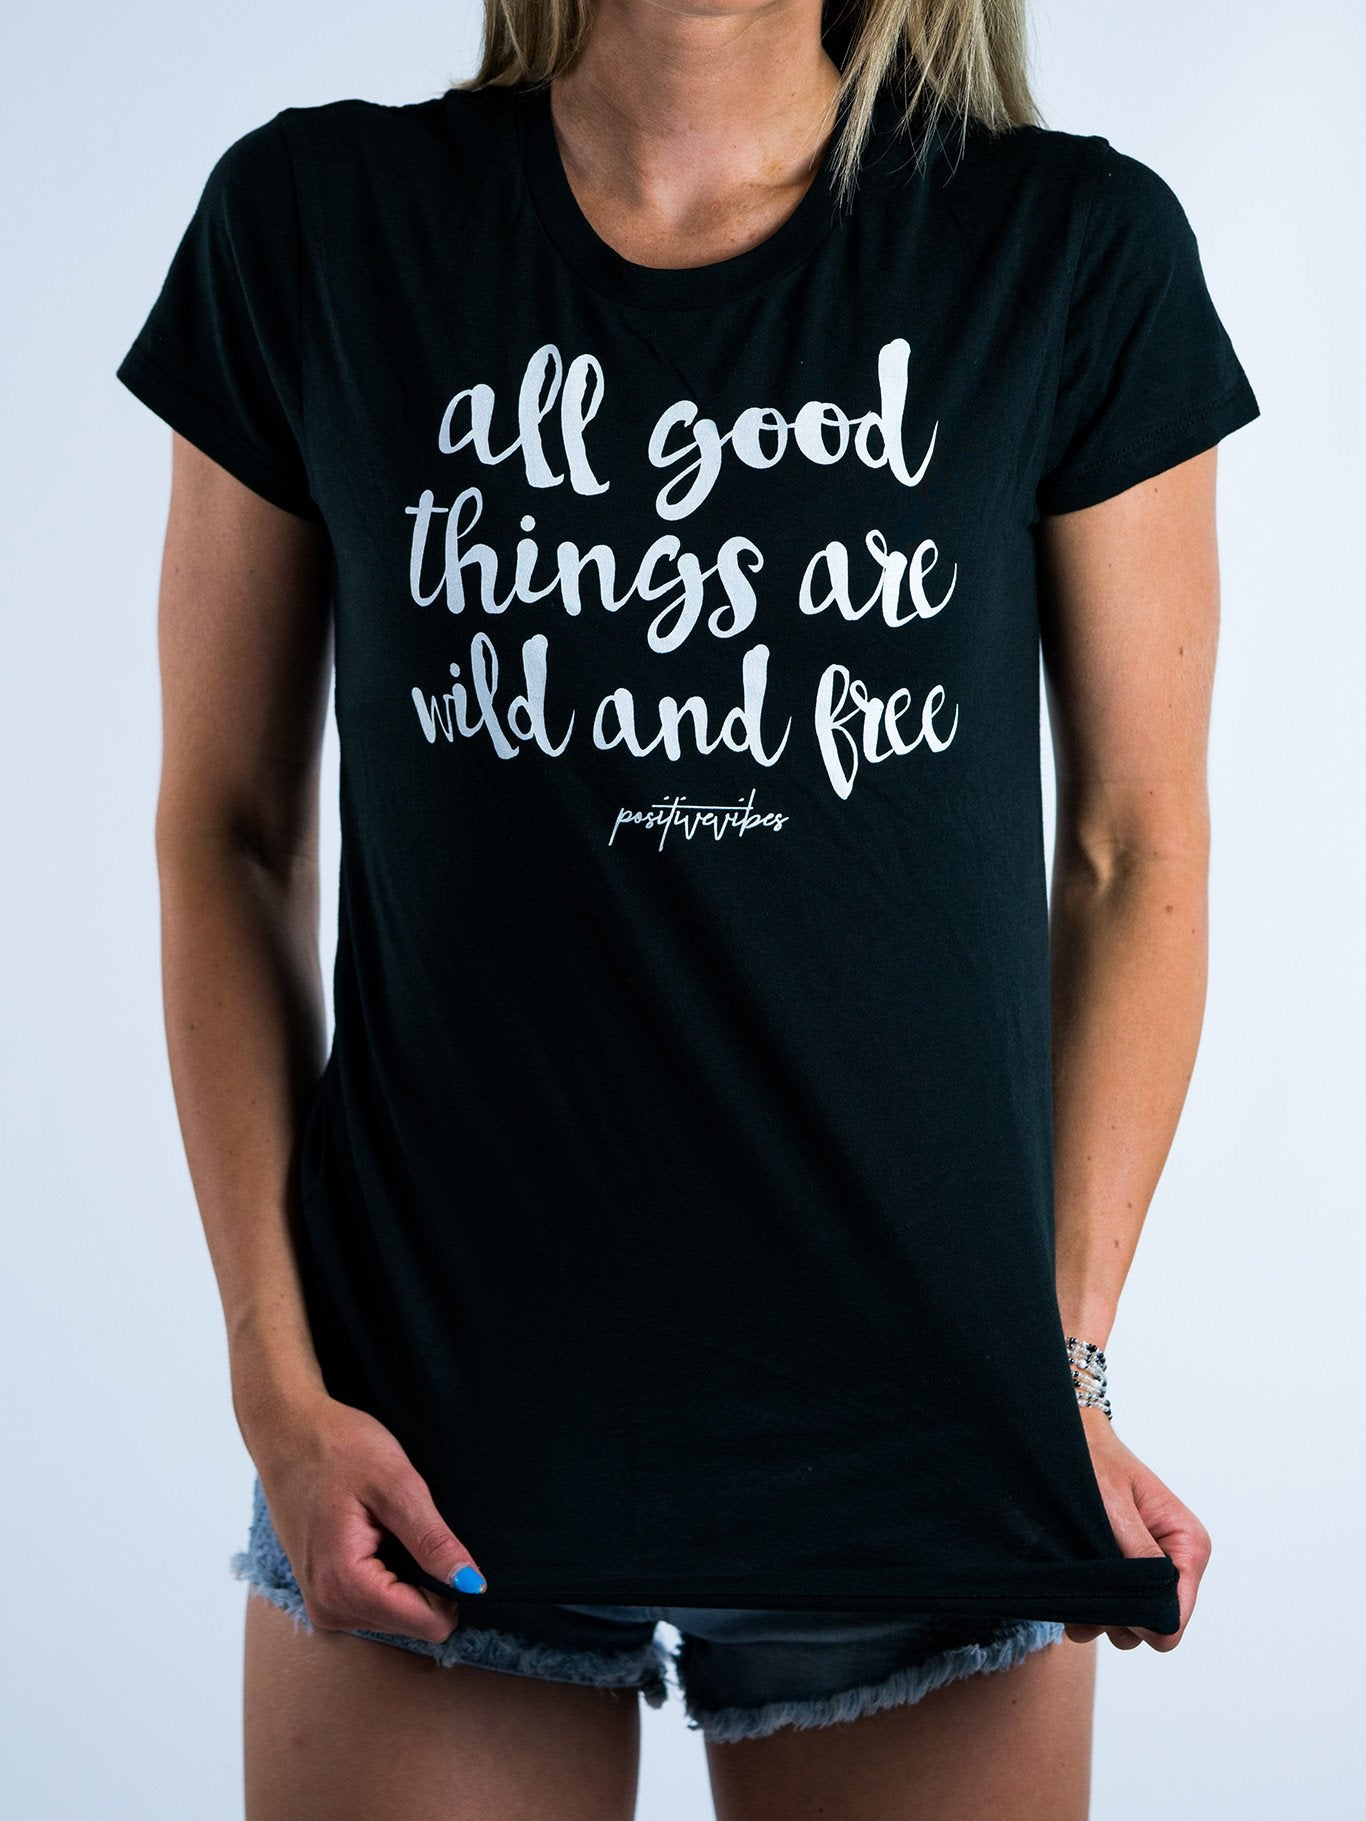 All Good Things Are Wild And Free Tee - Positive Vibes Clothing